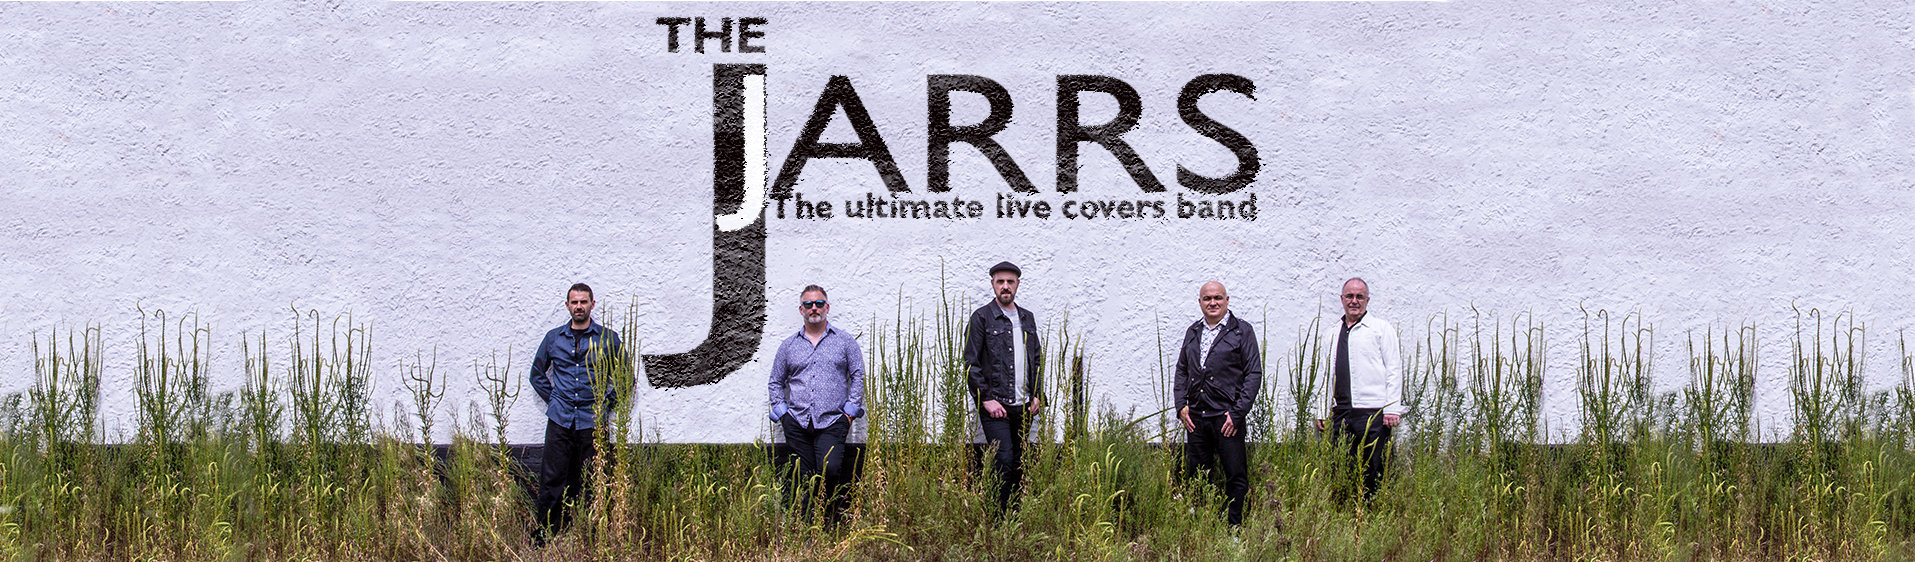 The Jjarrs - The Ultimate Live Covers Band in Cambridgeshire